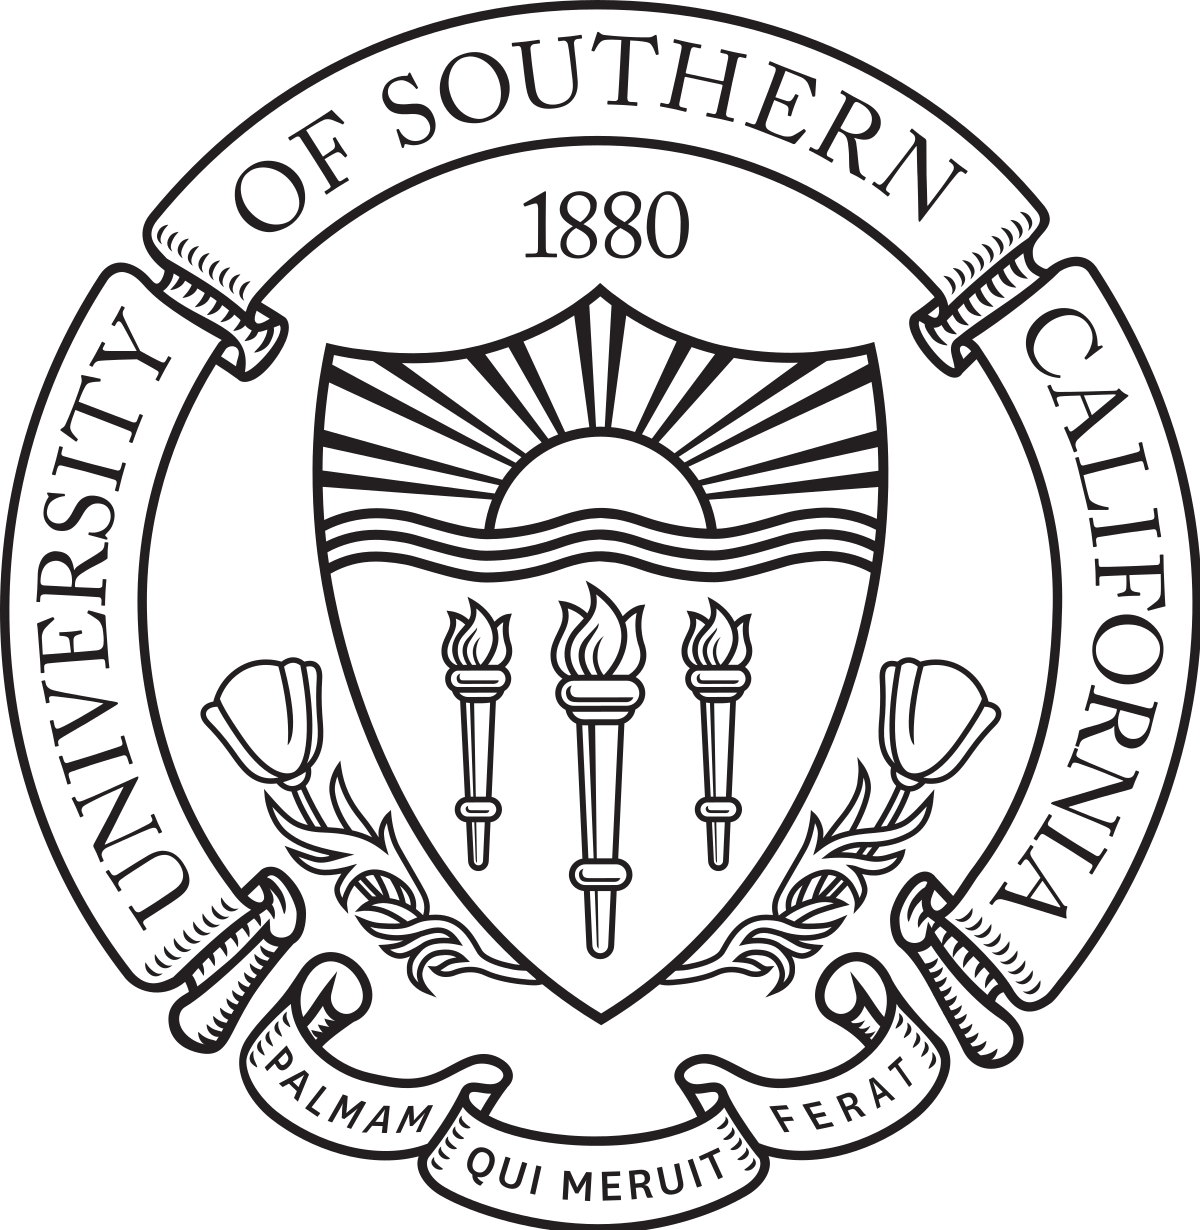 University of southern california logo png. Wikipedia